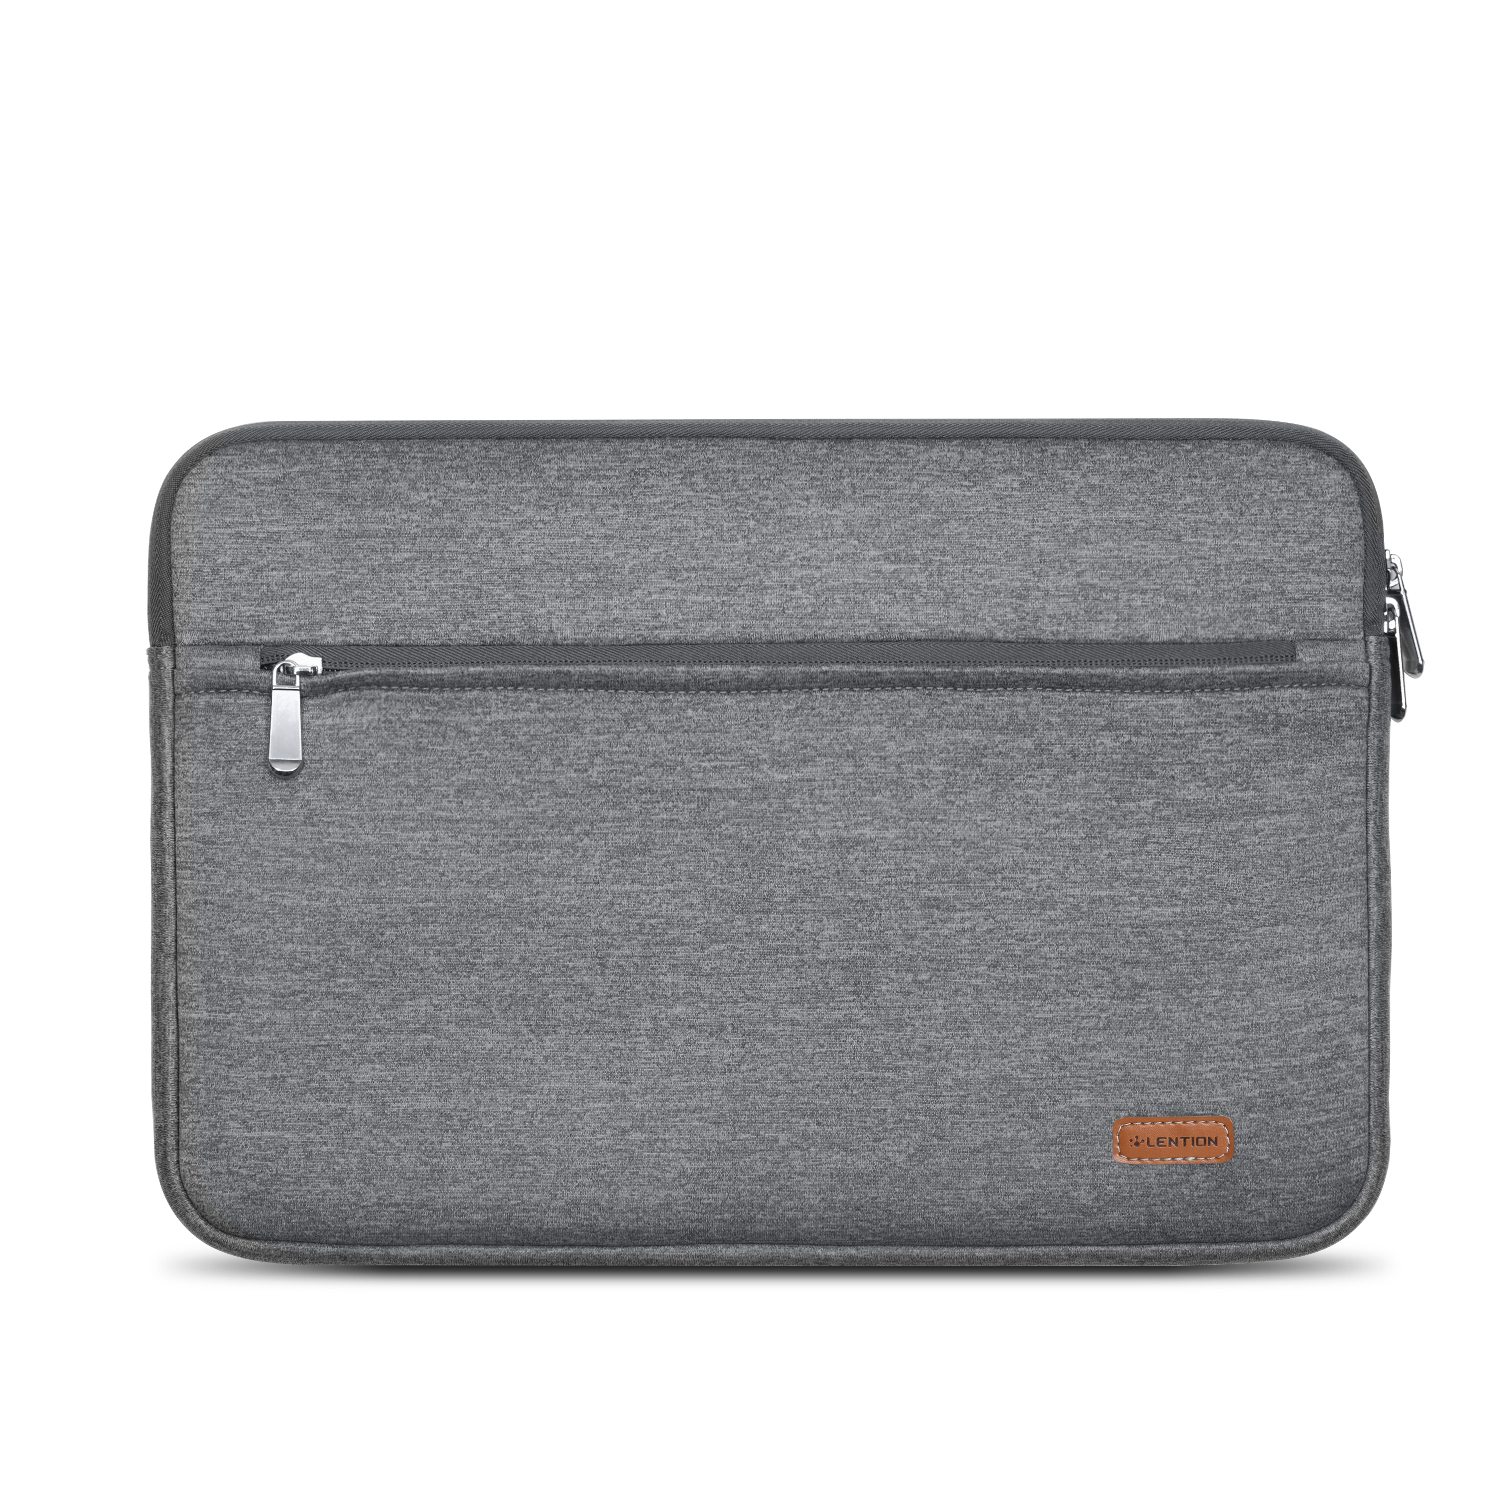 laptop Sleeve Case for 13 quot 14 quot 15 quot 15 4 notebook More 13 to 15 Inch protection macbook air 13 3 Ultra Slim Laptop bag 15 6 in Laptop Bags amp Cases from Computer amp Office